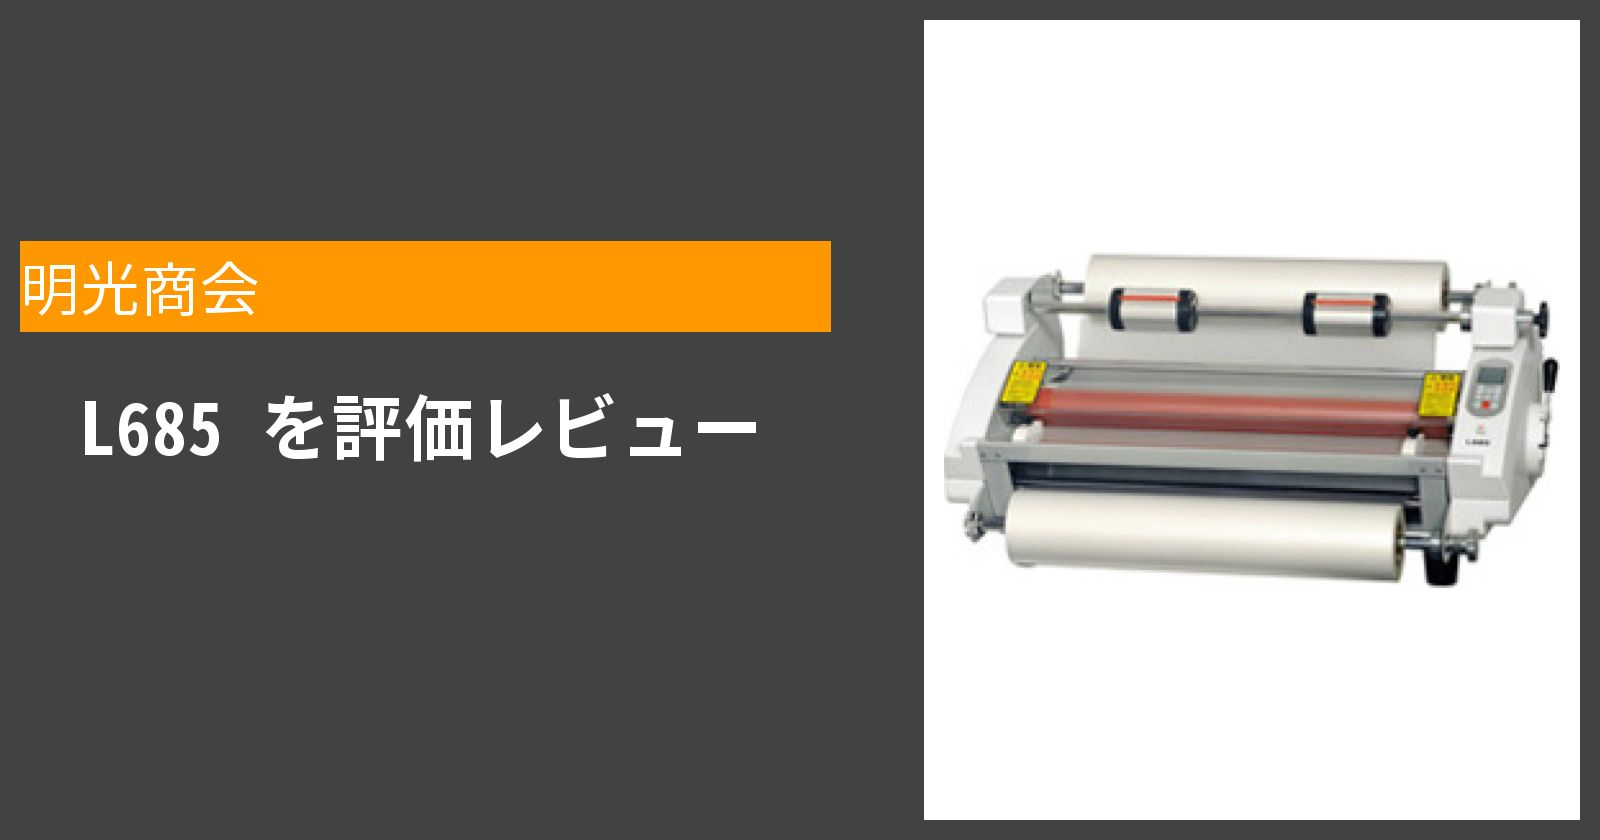 L685を徹底評価